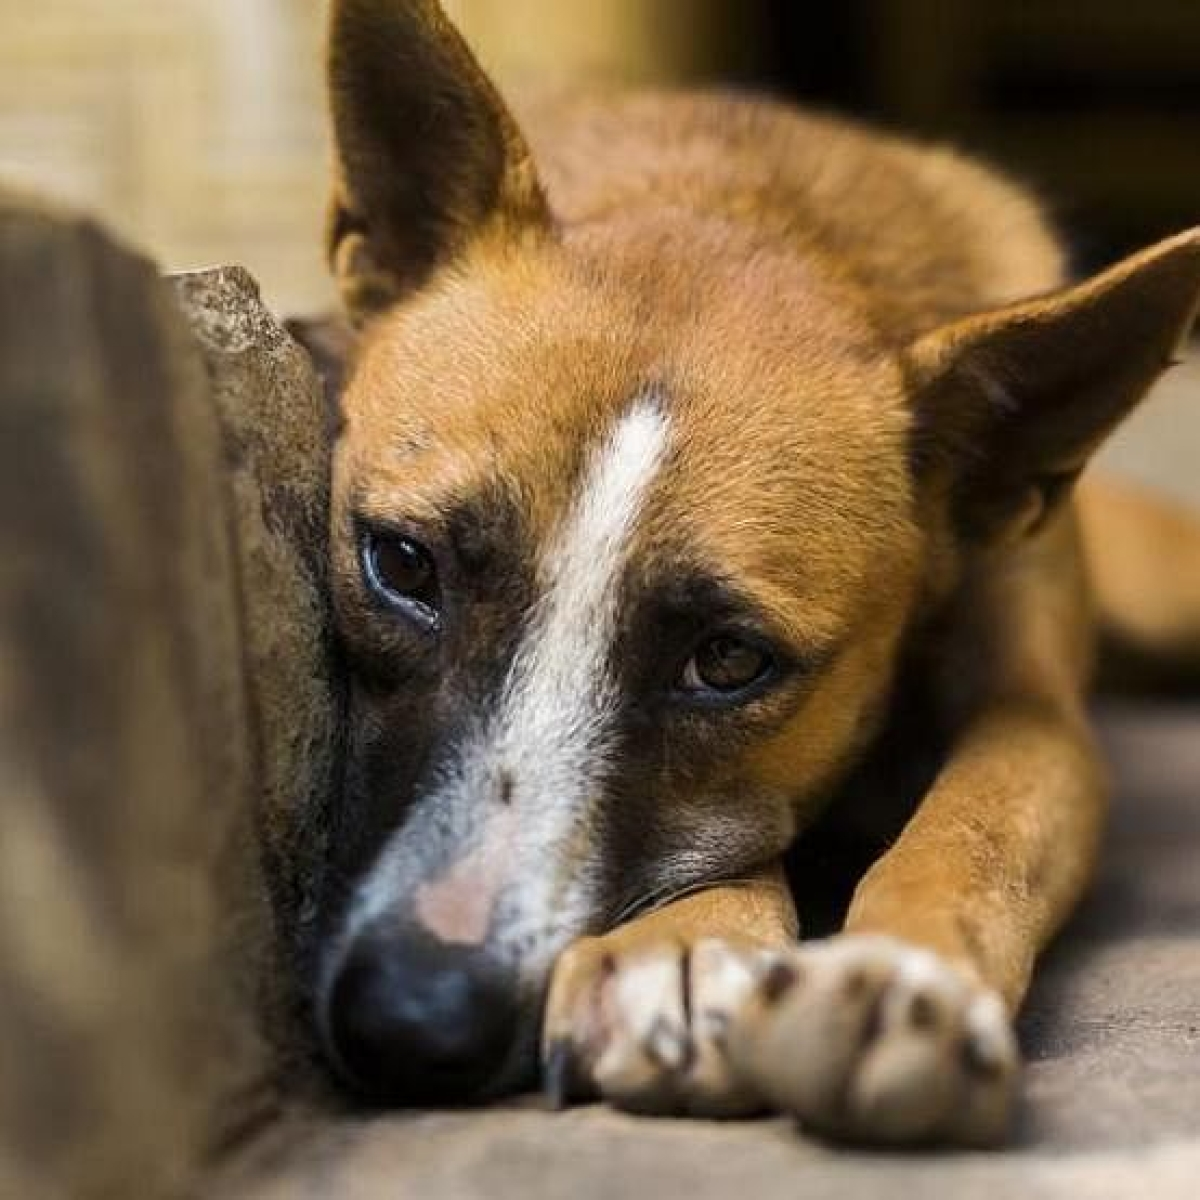 Mumbai: Man brutally assaults two stray dogs with an iron rod; both go missing